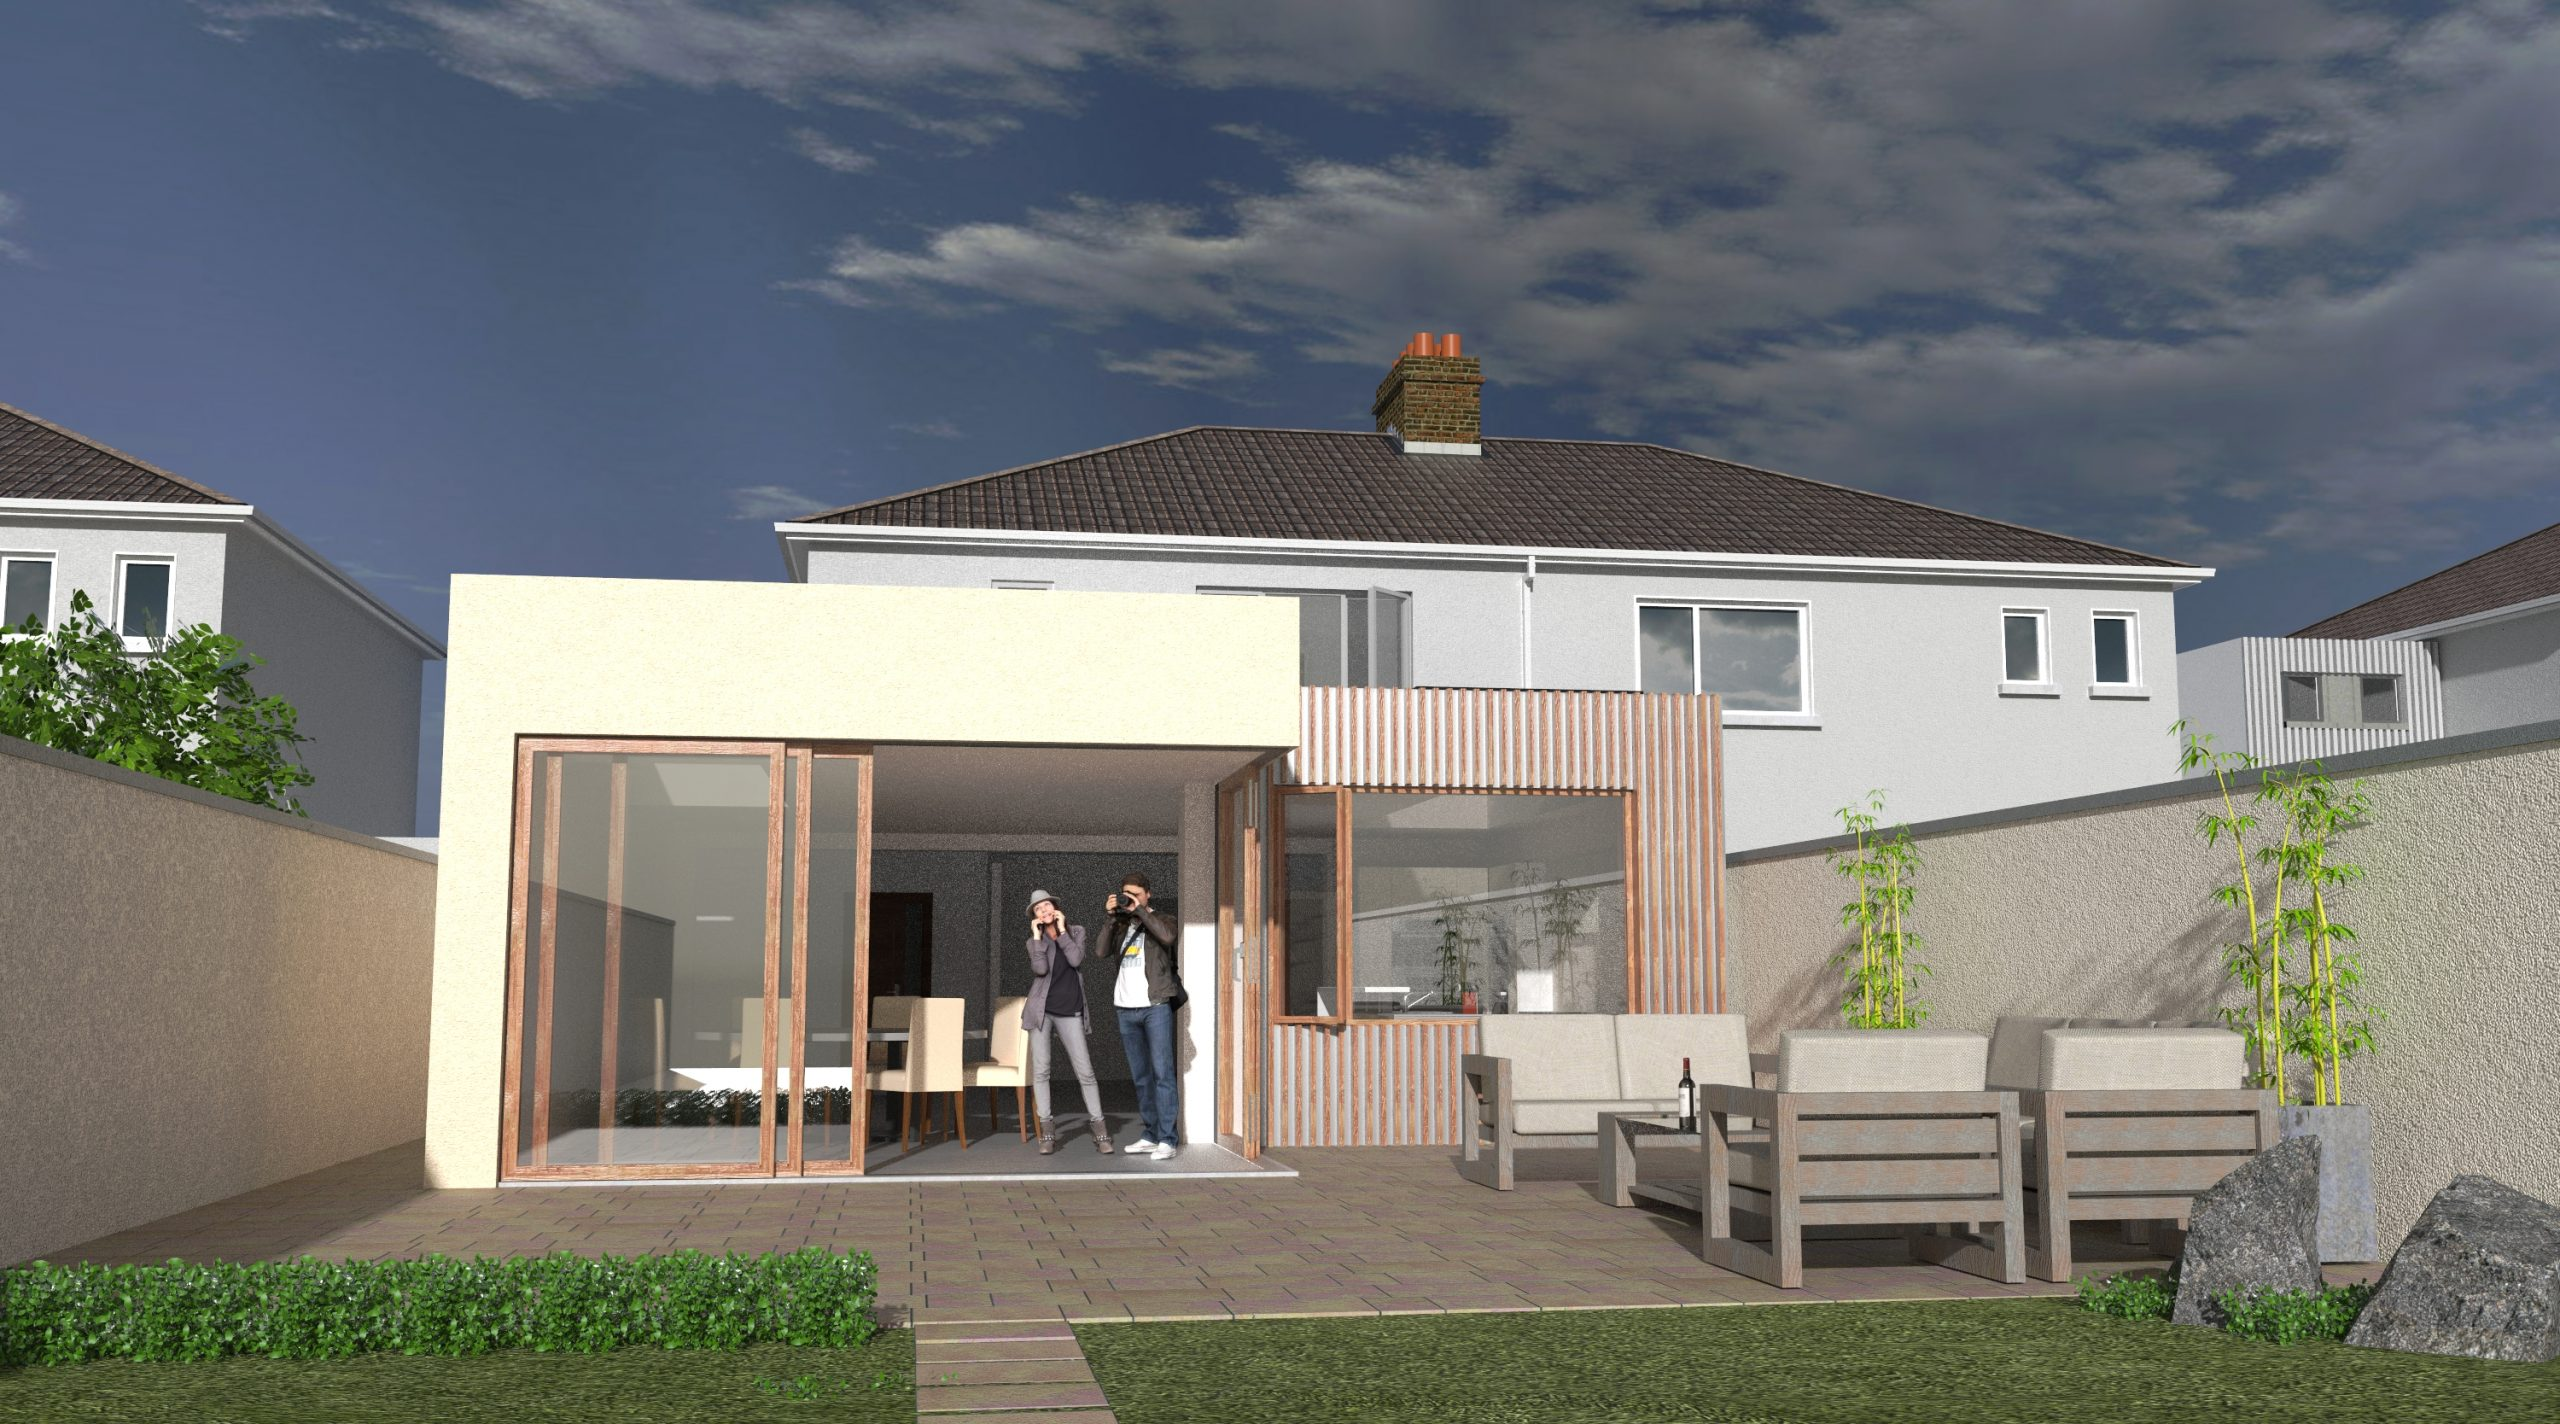 Domestic extension, private client. Malahide Co Dublin